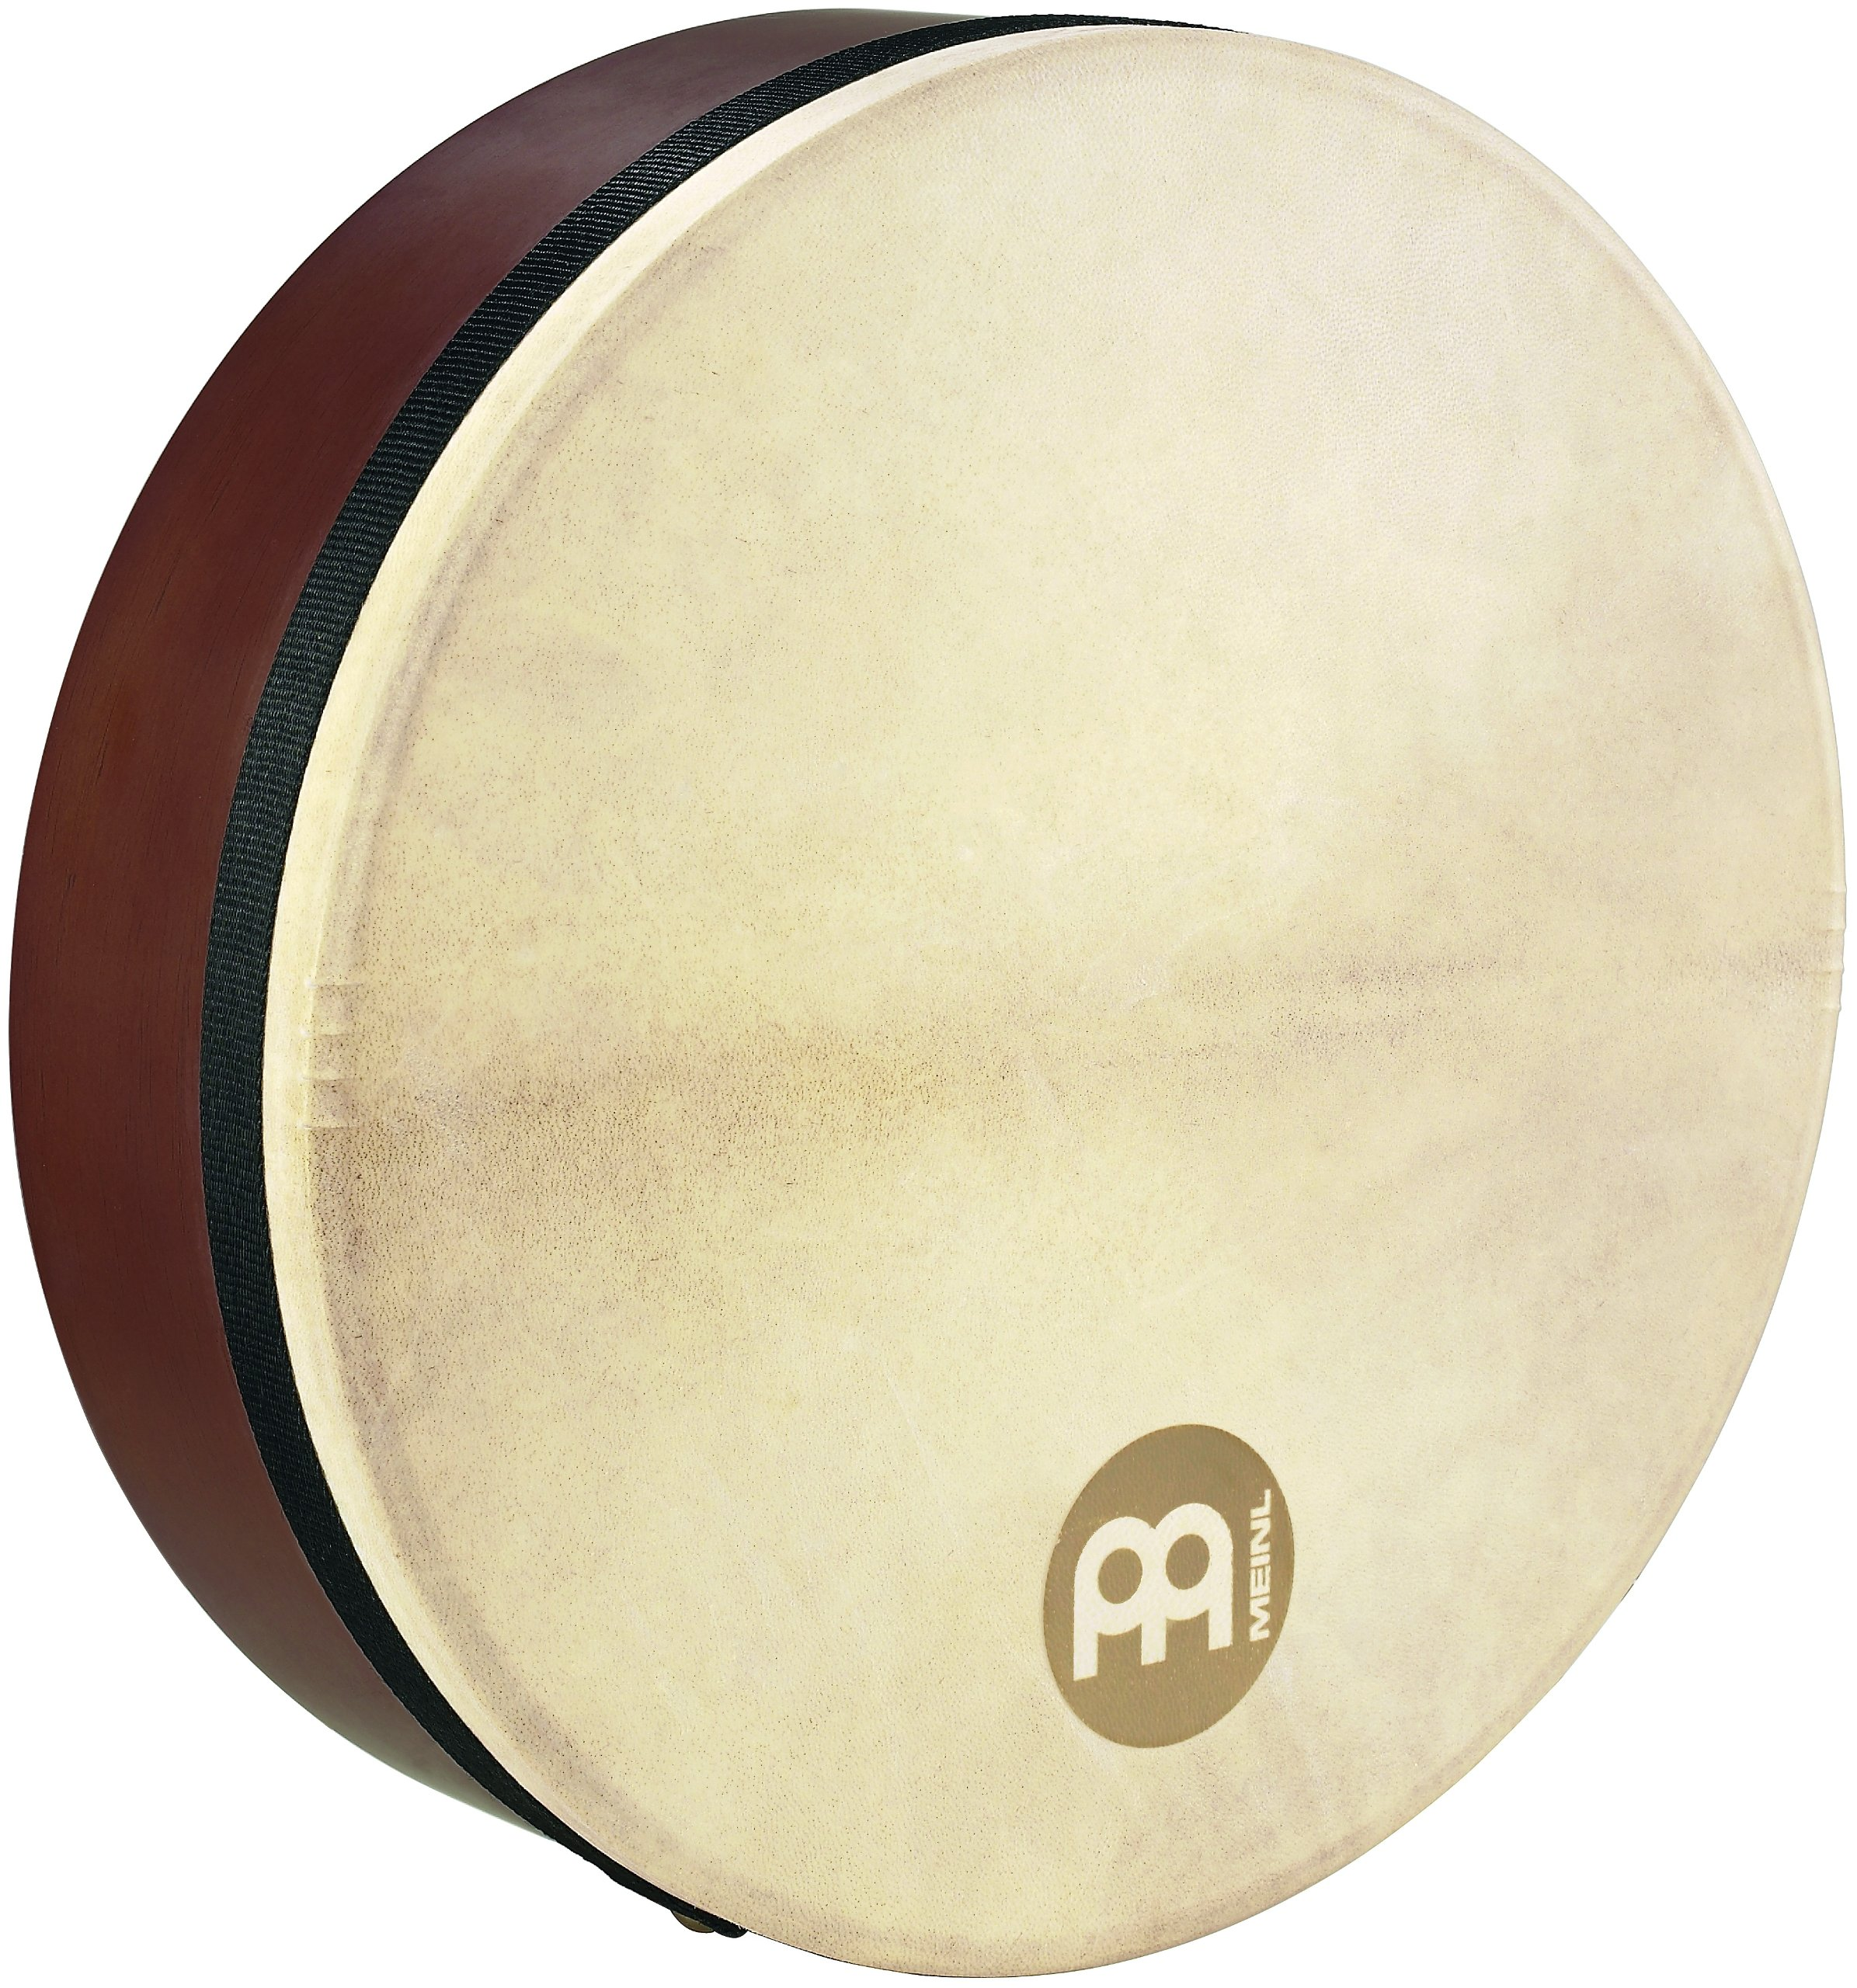 Meinl Percussion FD14BE 14-Inch Goat Skin Bendir, African Brown by Meinl Percussion